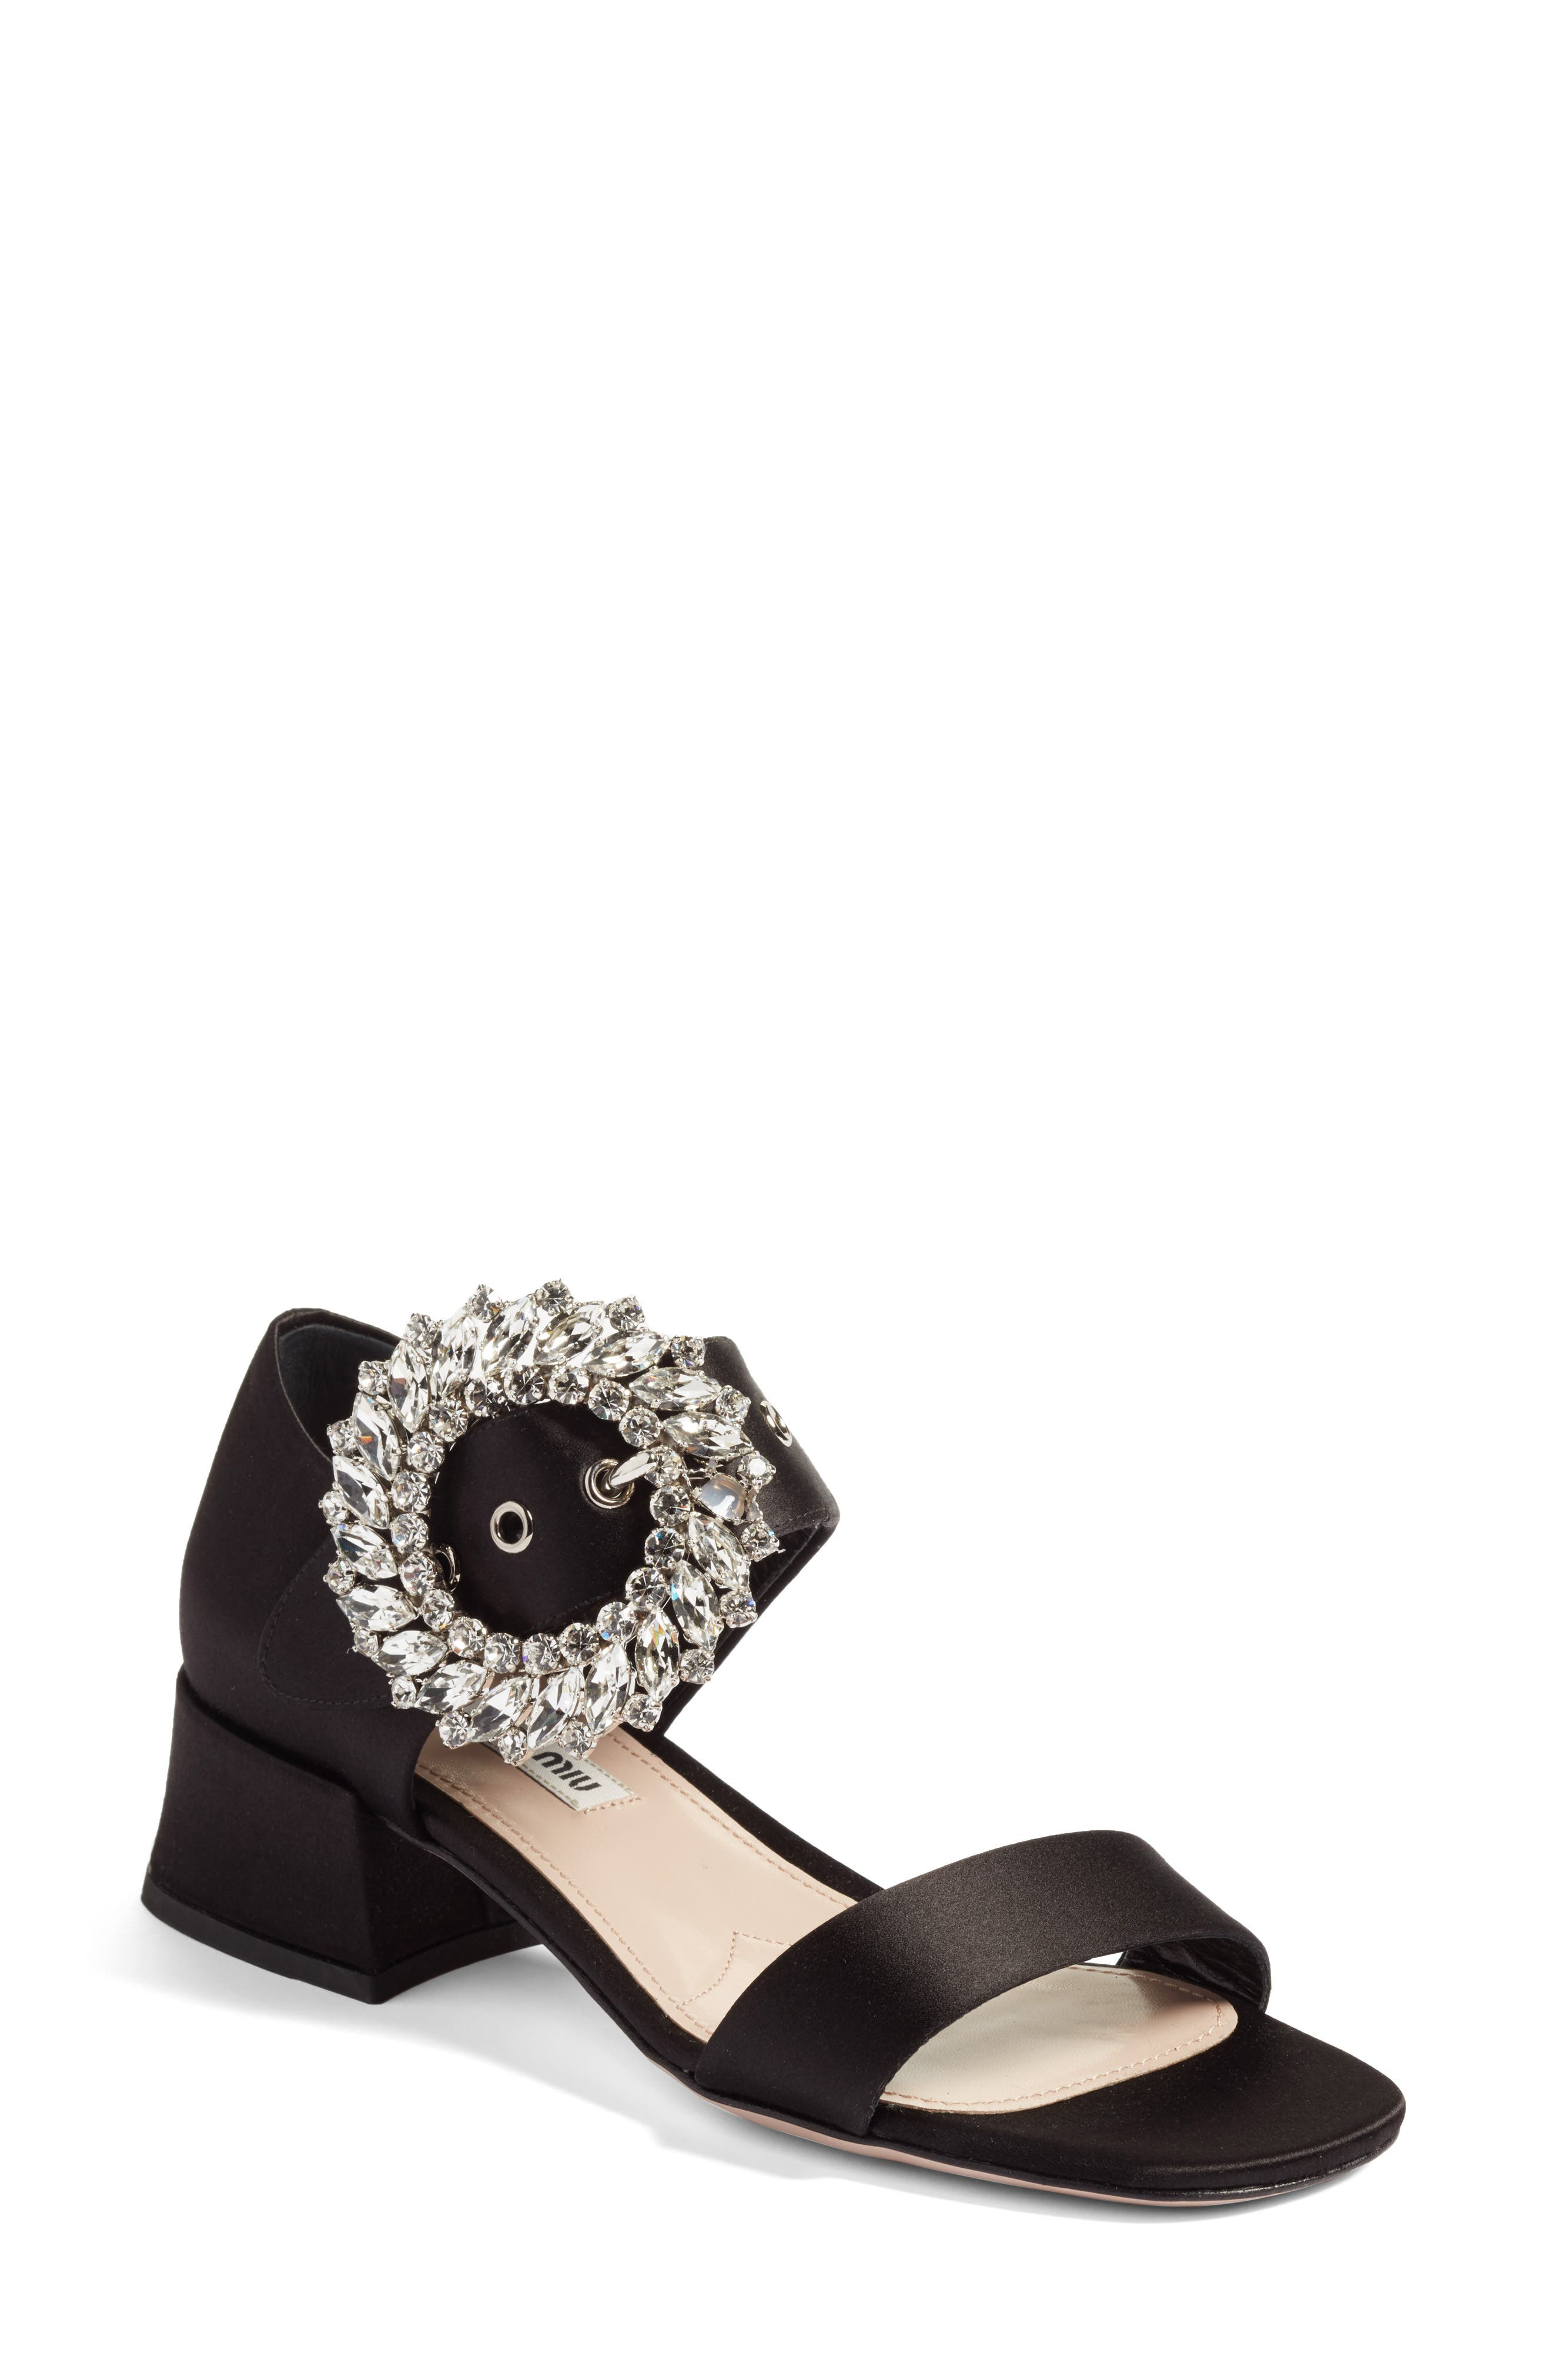 Main Image - Miu Miu Crystal Buckle Mary Jane Sandal (Women)